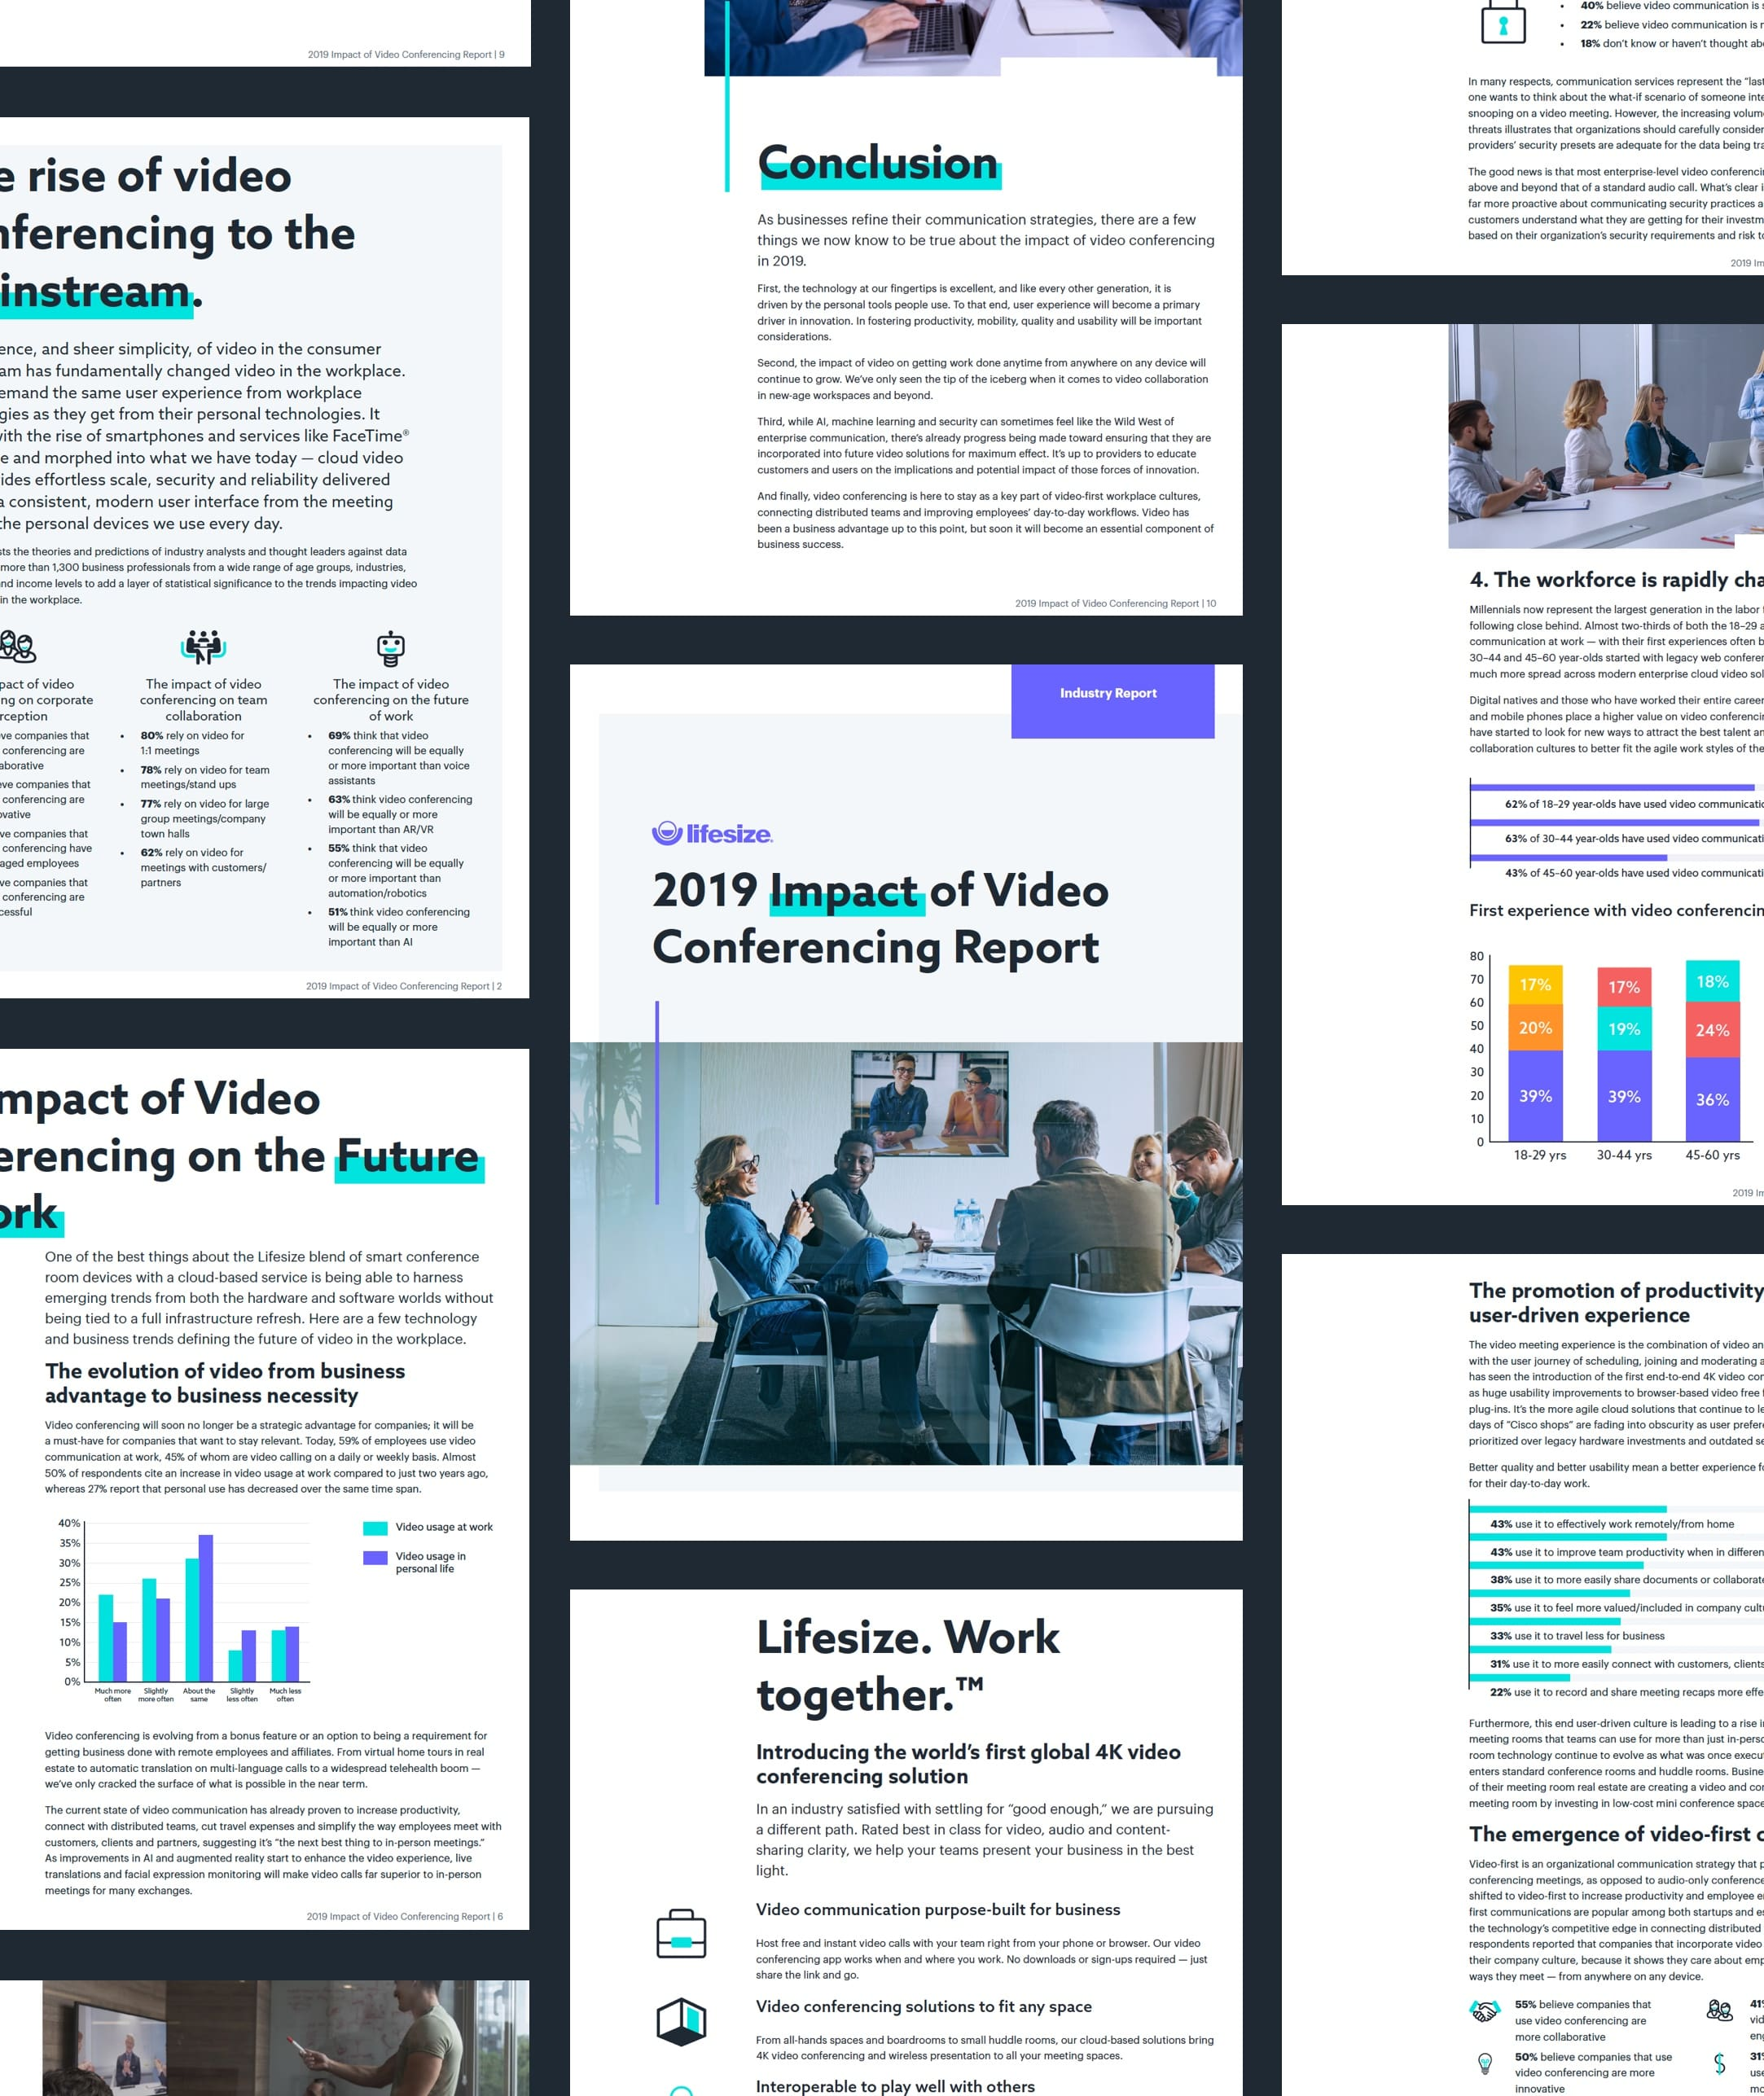 2019 Impact of Video Conferencing Report thumbnail